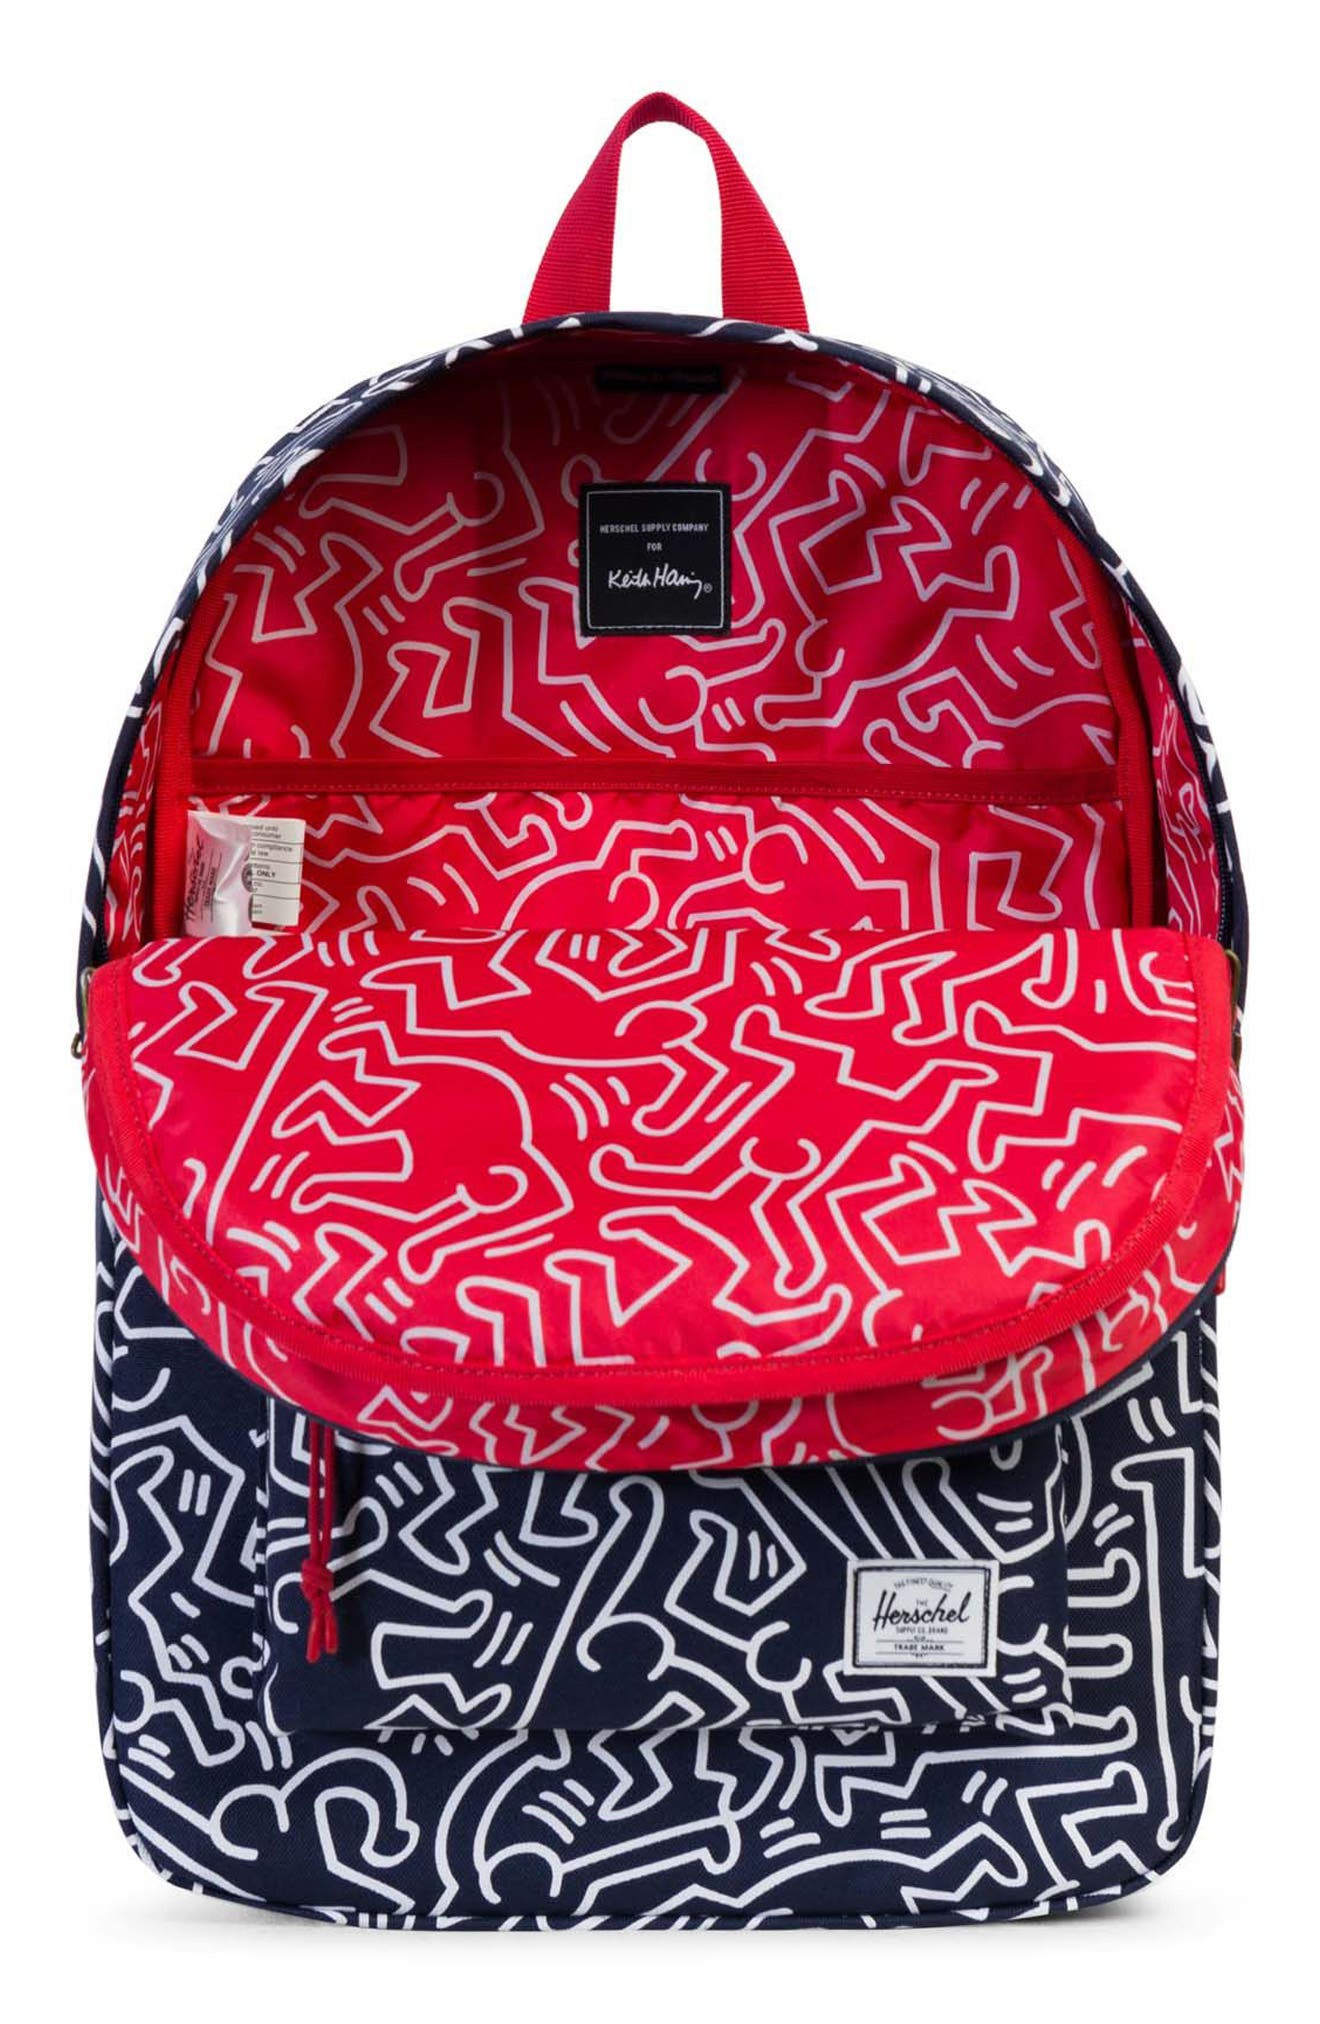 Winlaw x Keith Haring Backpack,                             Alternate thumbnail 6, color,